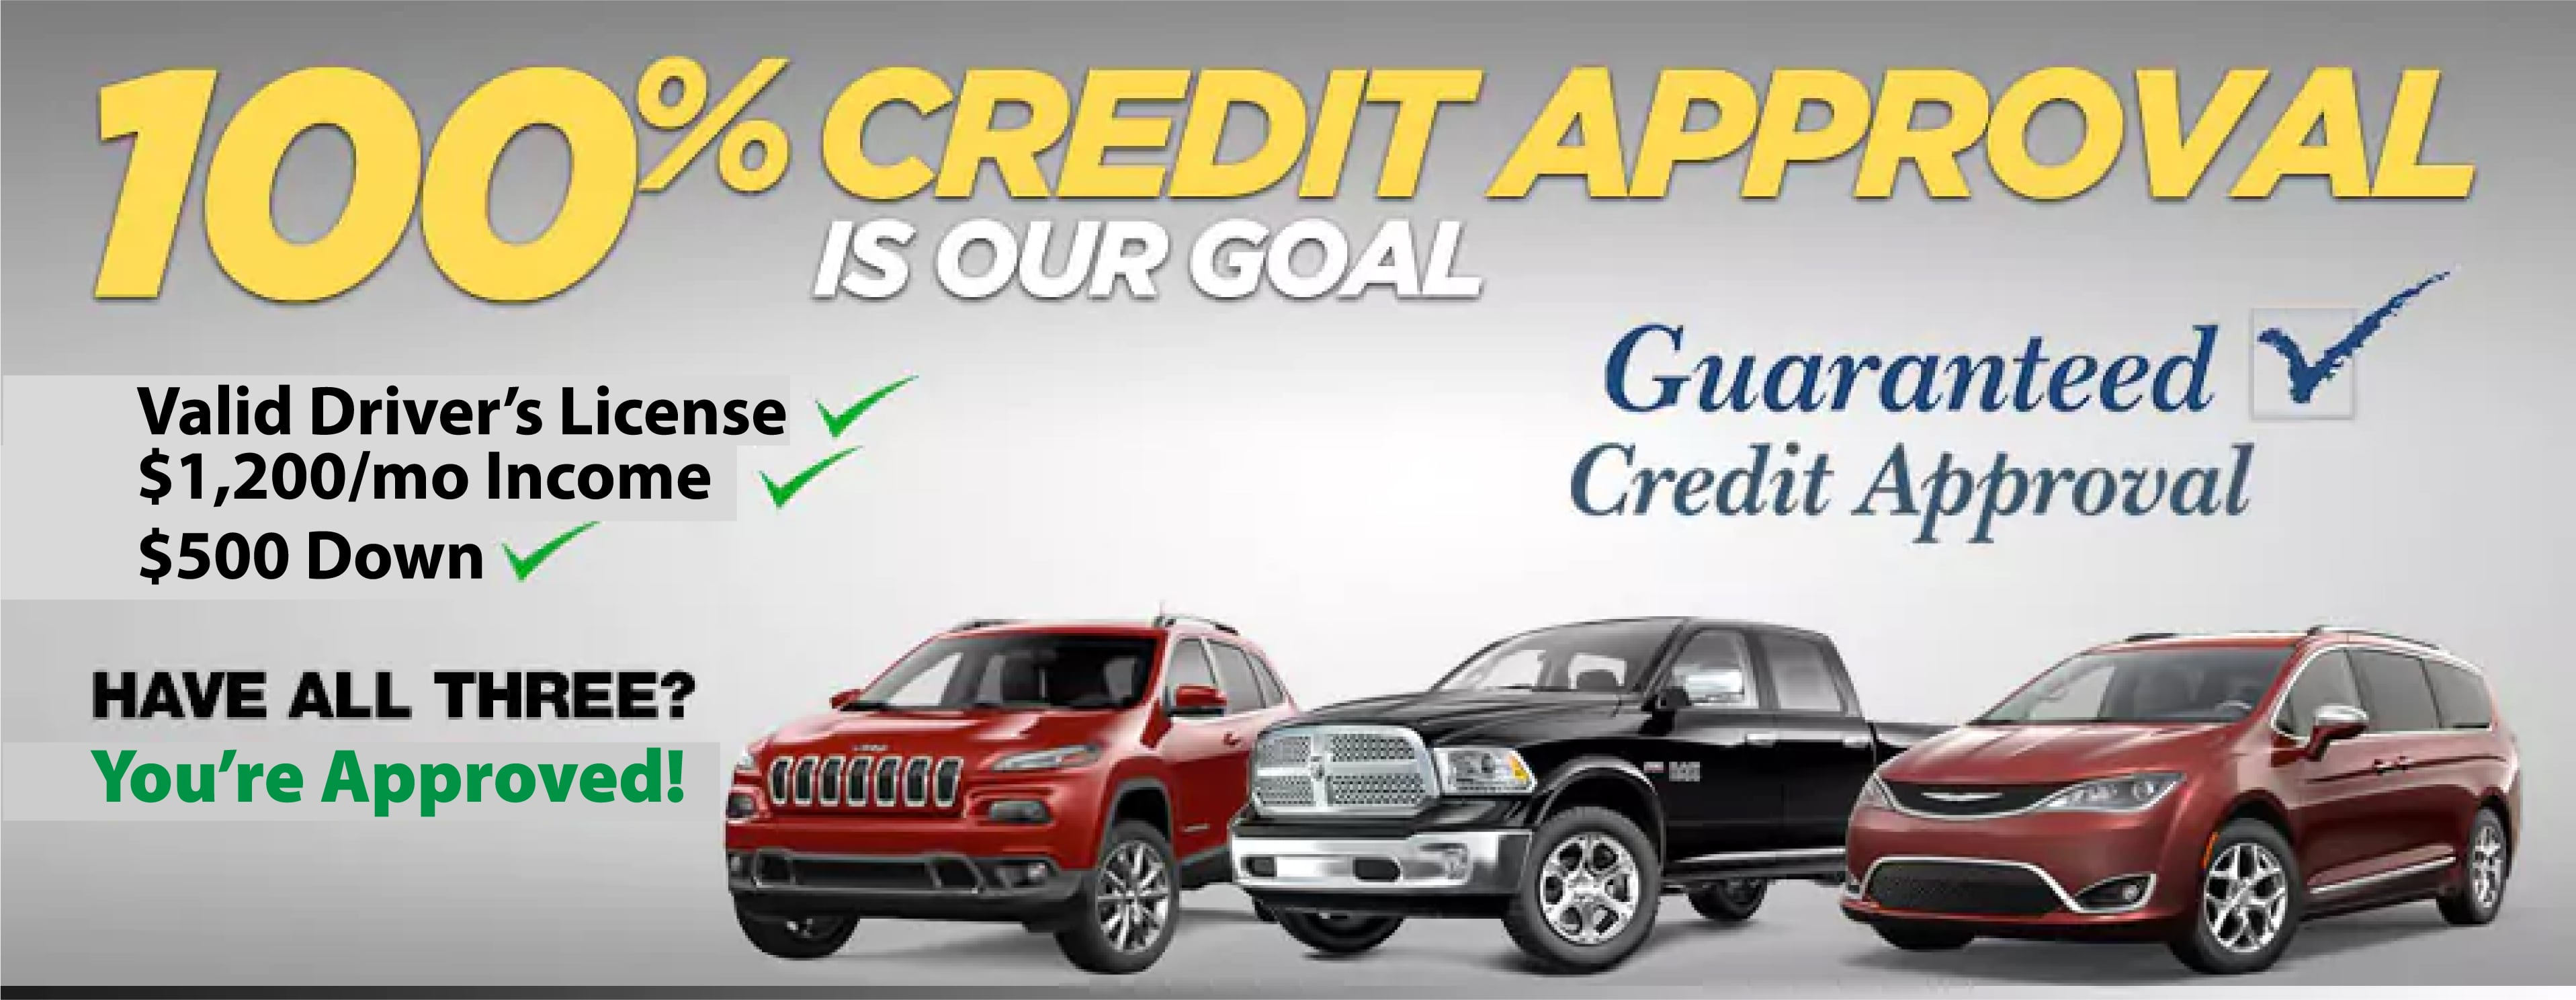 bad credit car financing dayton oh